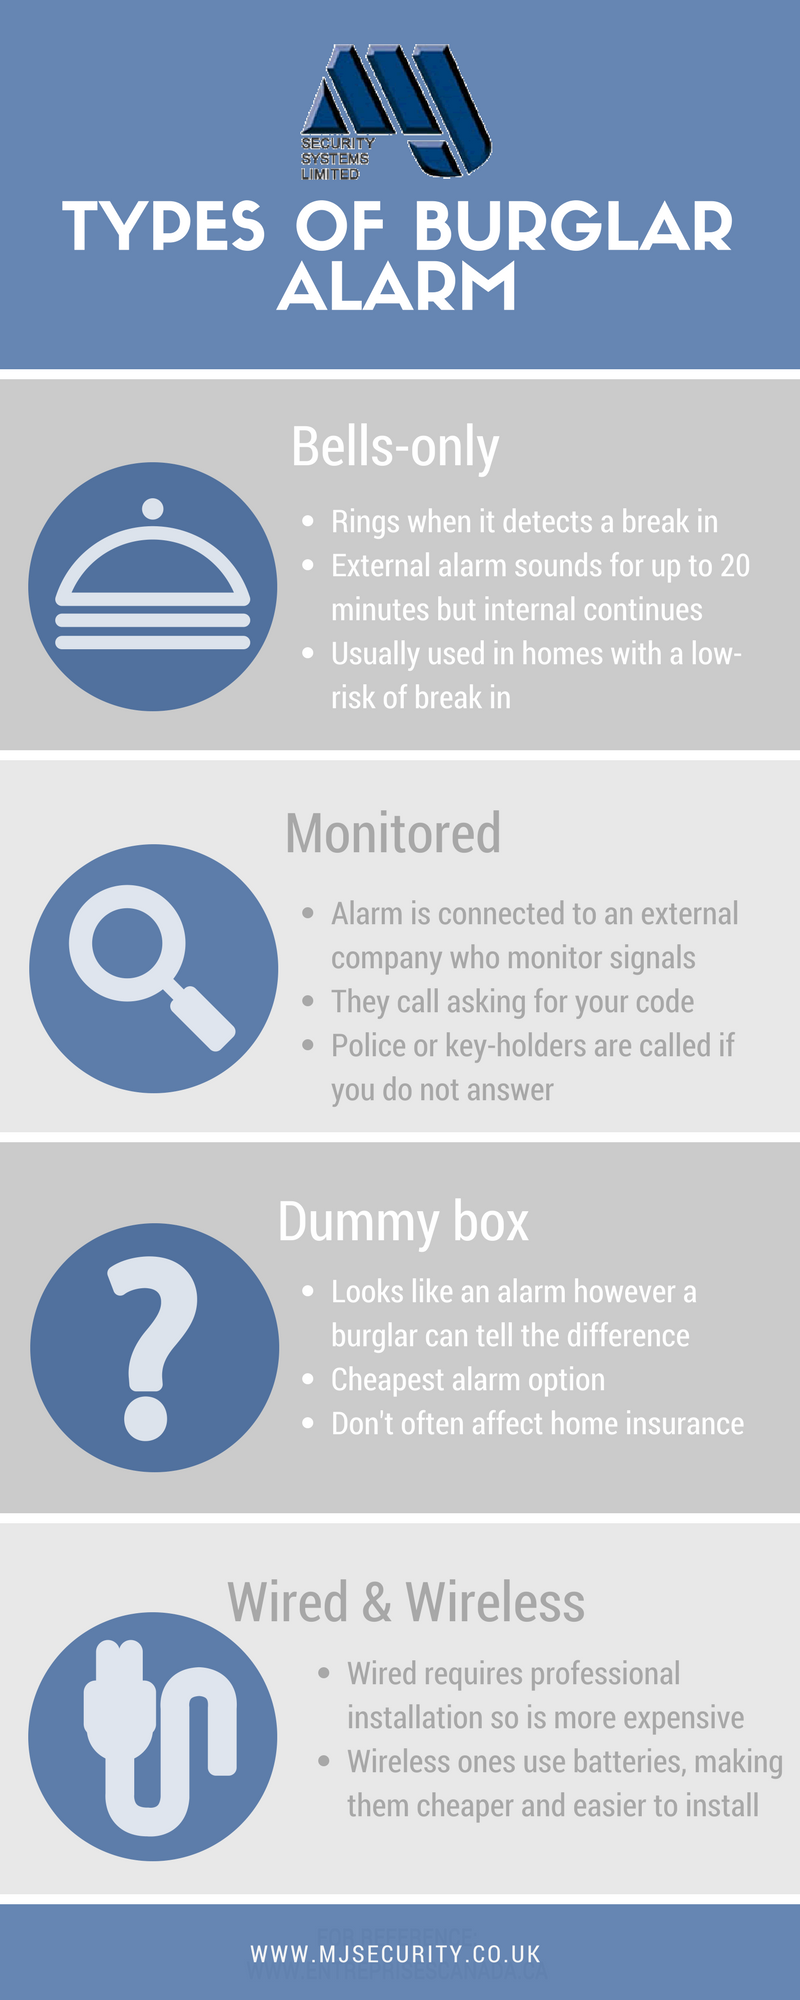 burglar-alarms-types-infographic-plaza